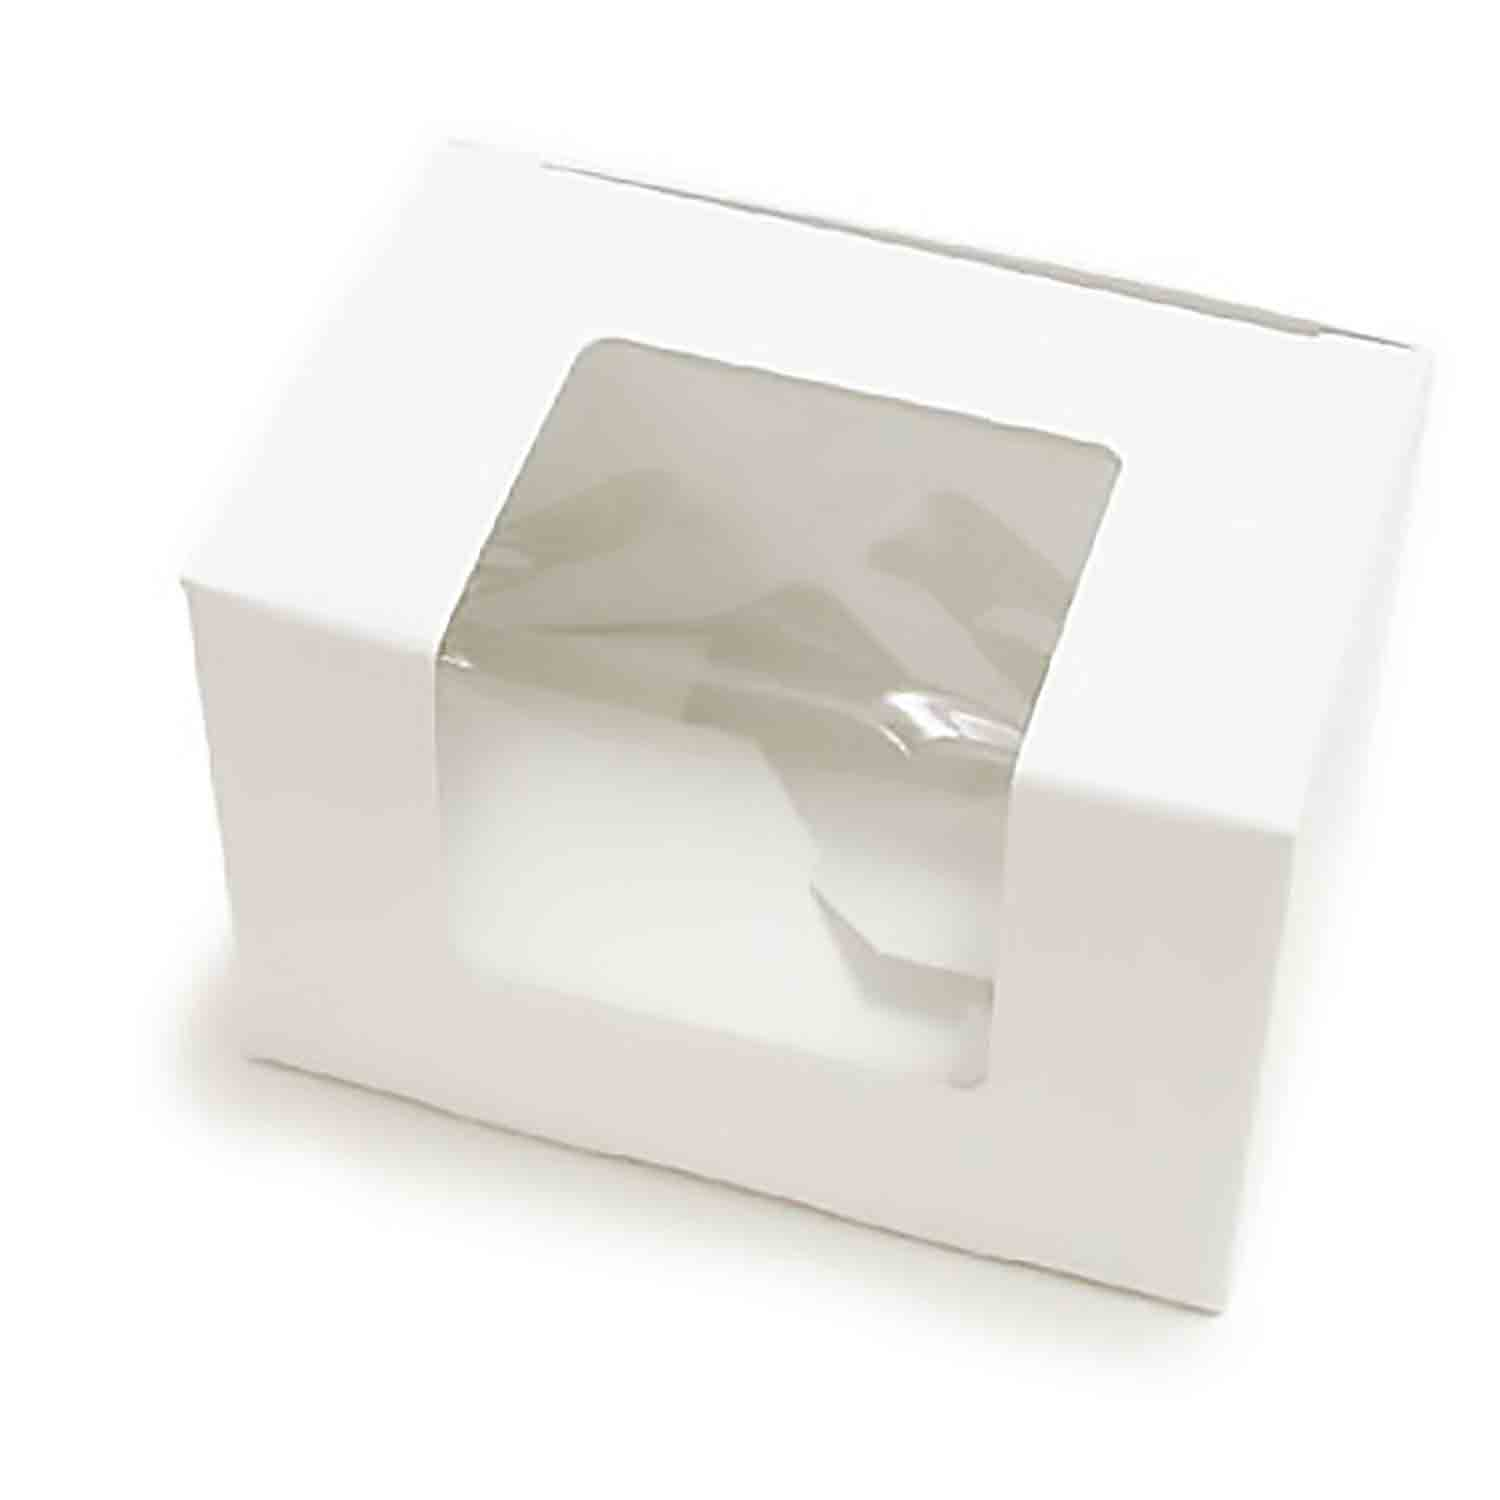 3 lb. White Egg Candy Box with Window